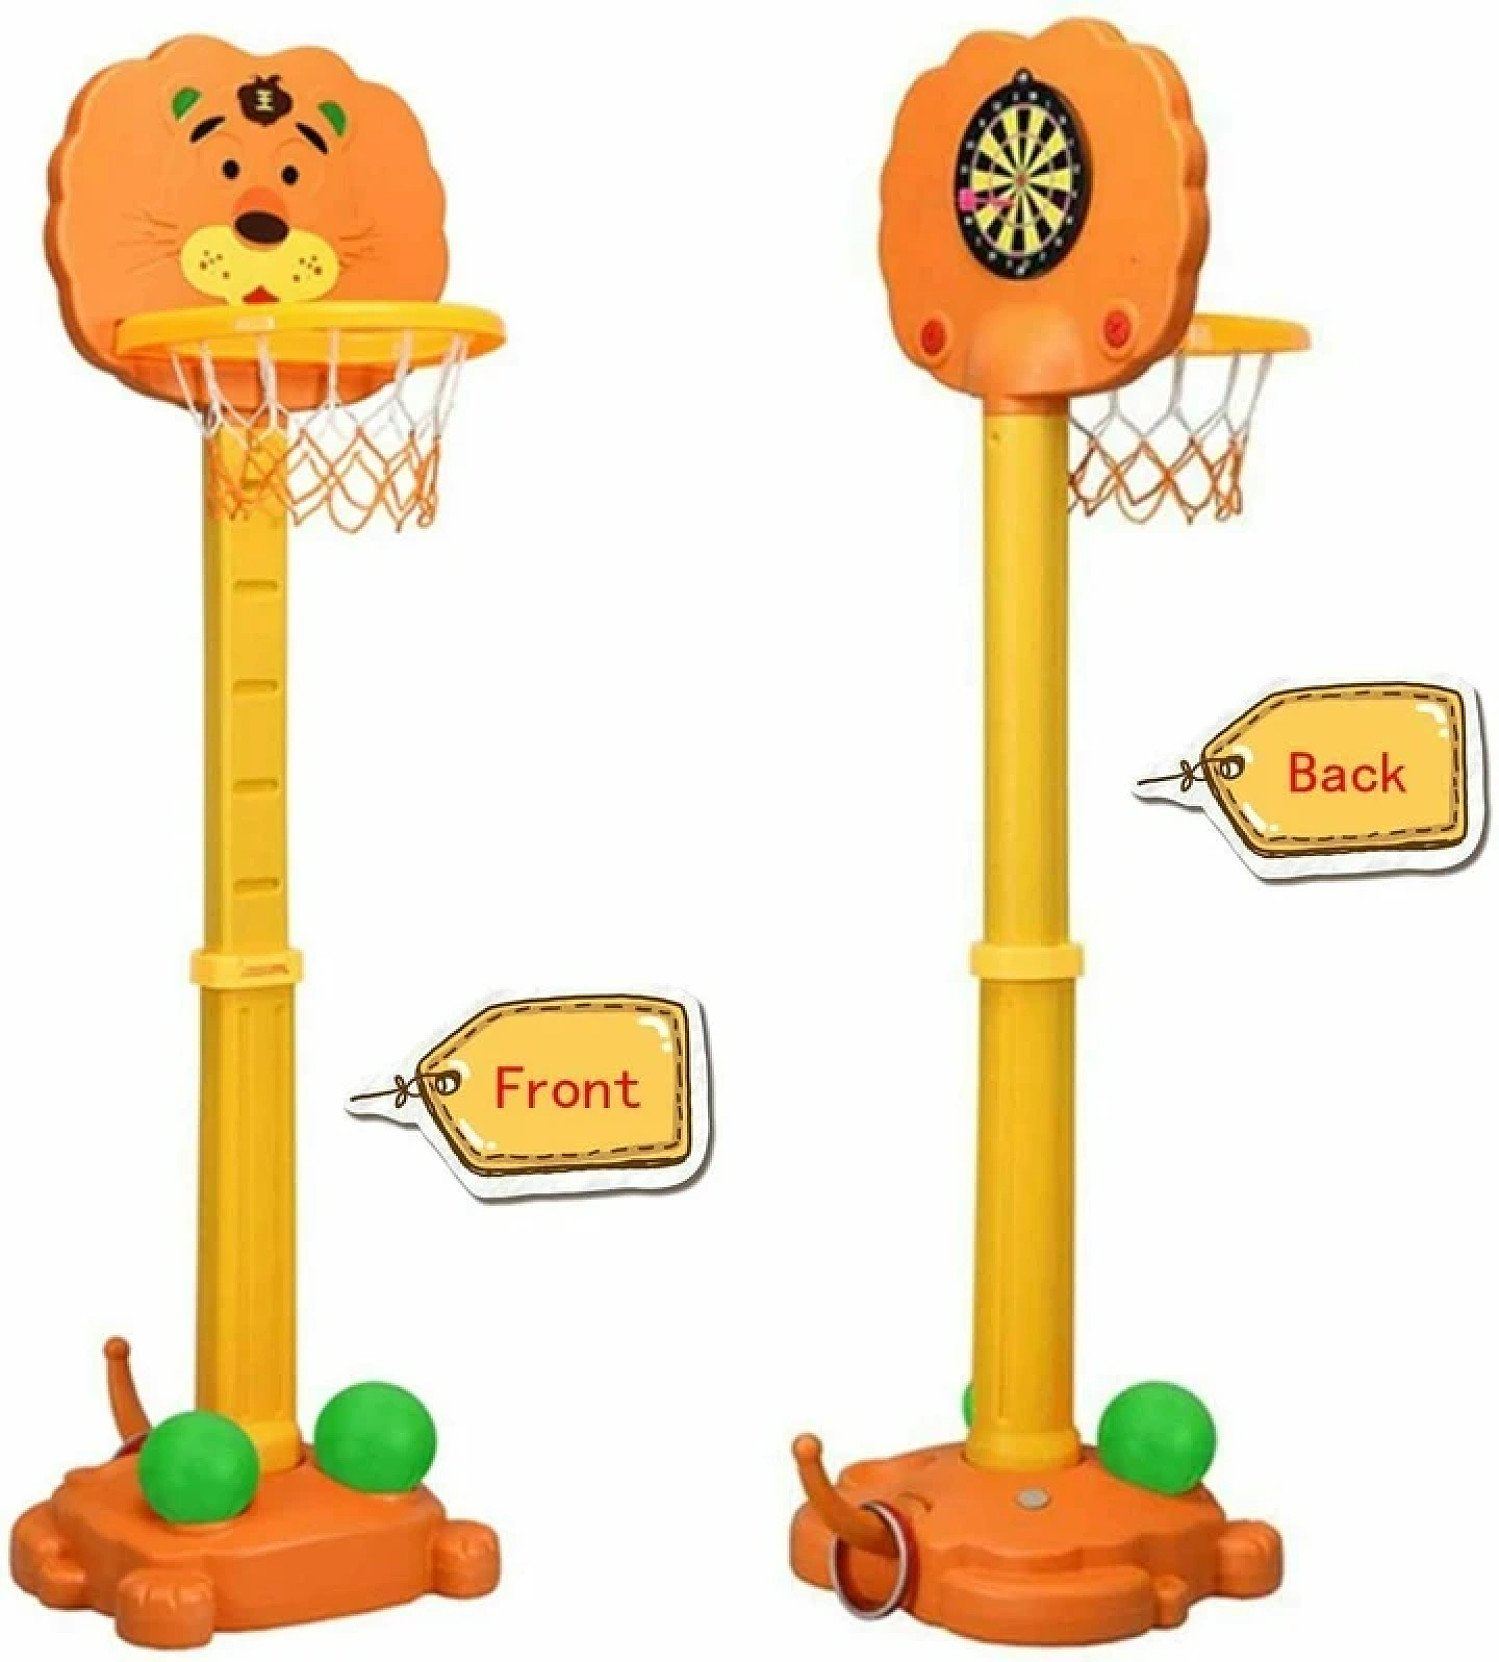 3 in 1 Kids Basketball, Hoops and Darts Stand Free Postage